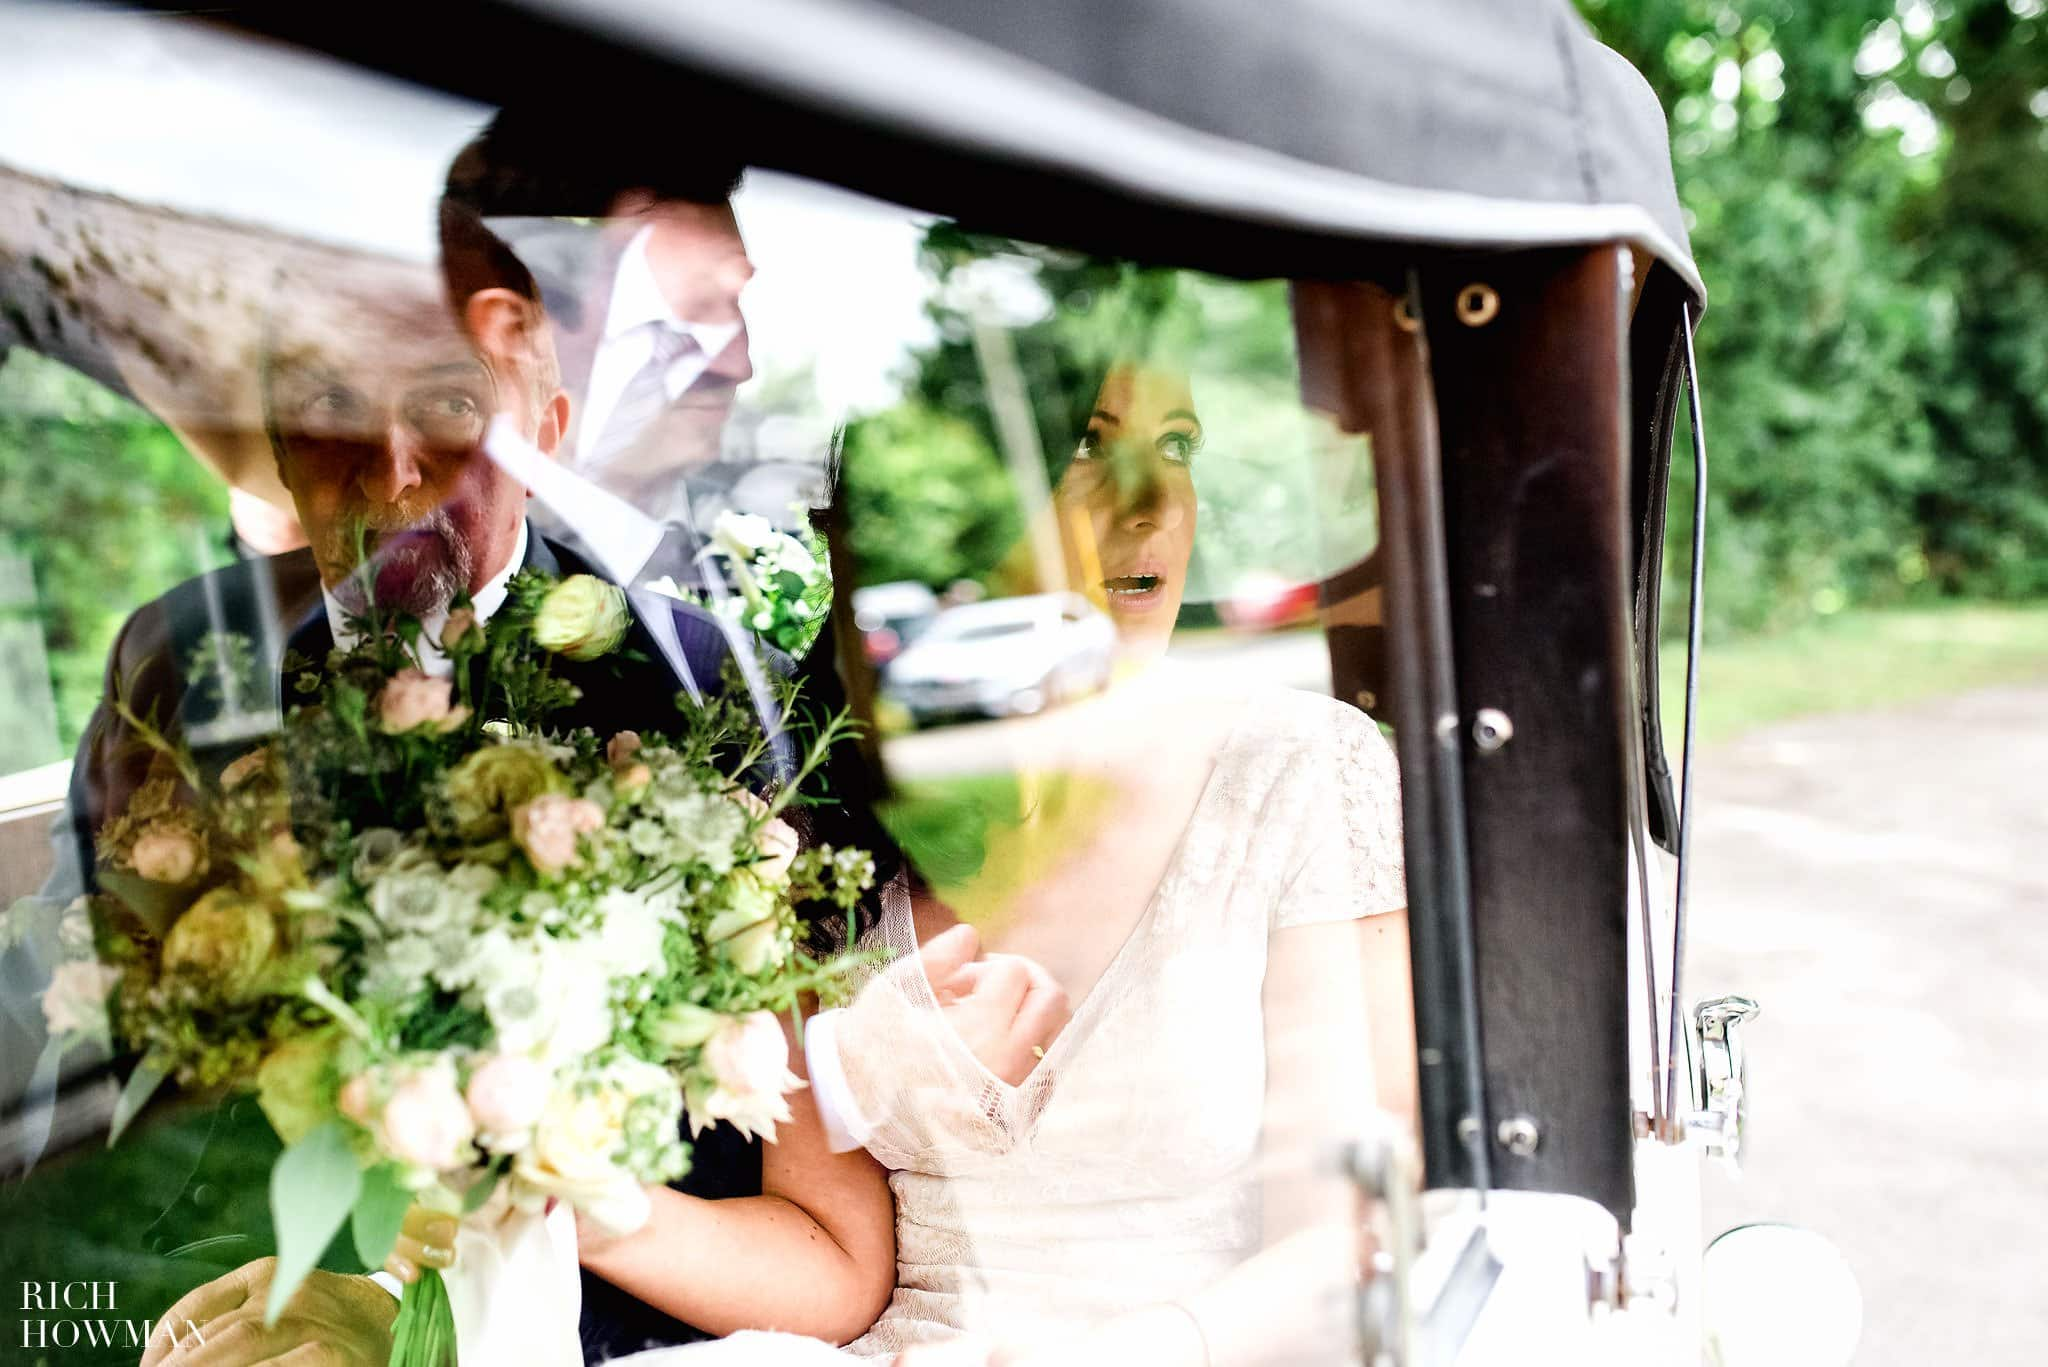 Bride and her father reflected through the car window before her wedding at St Mary's Church, Whitewell